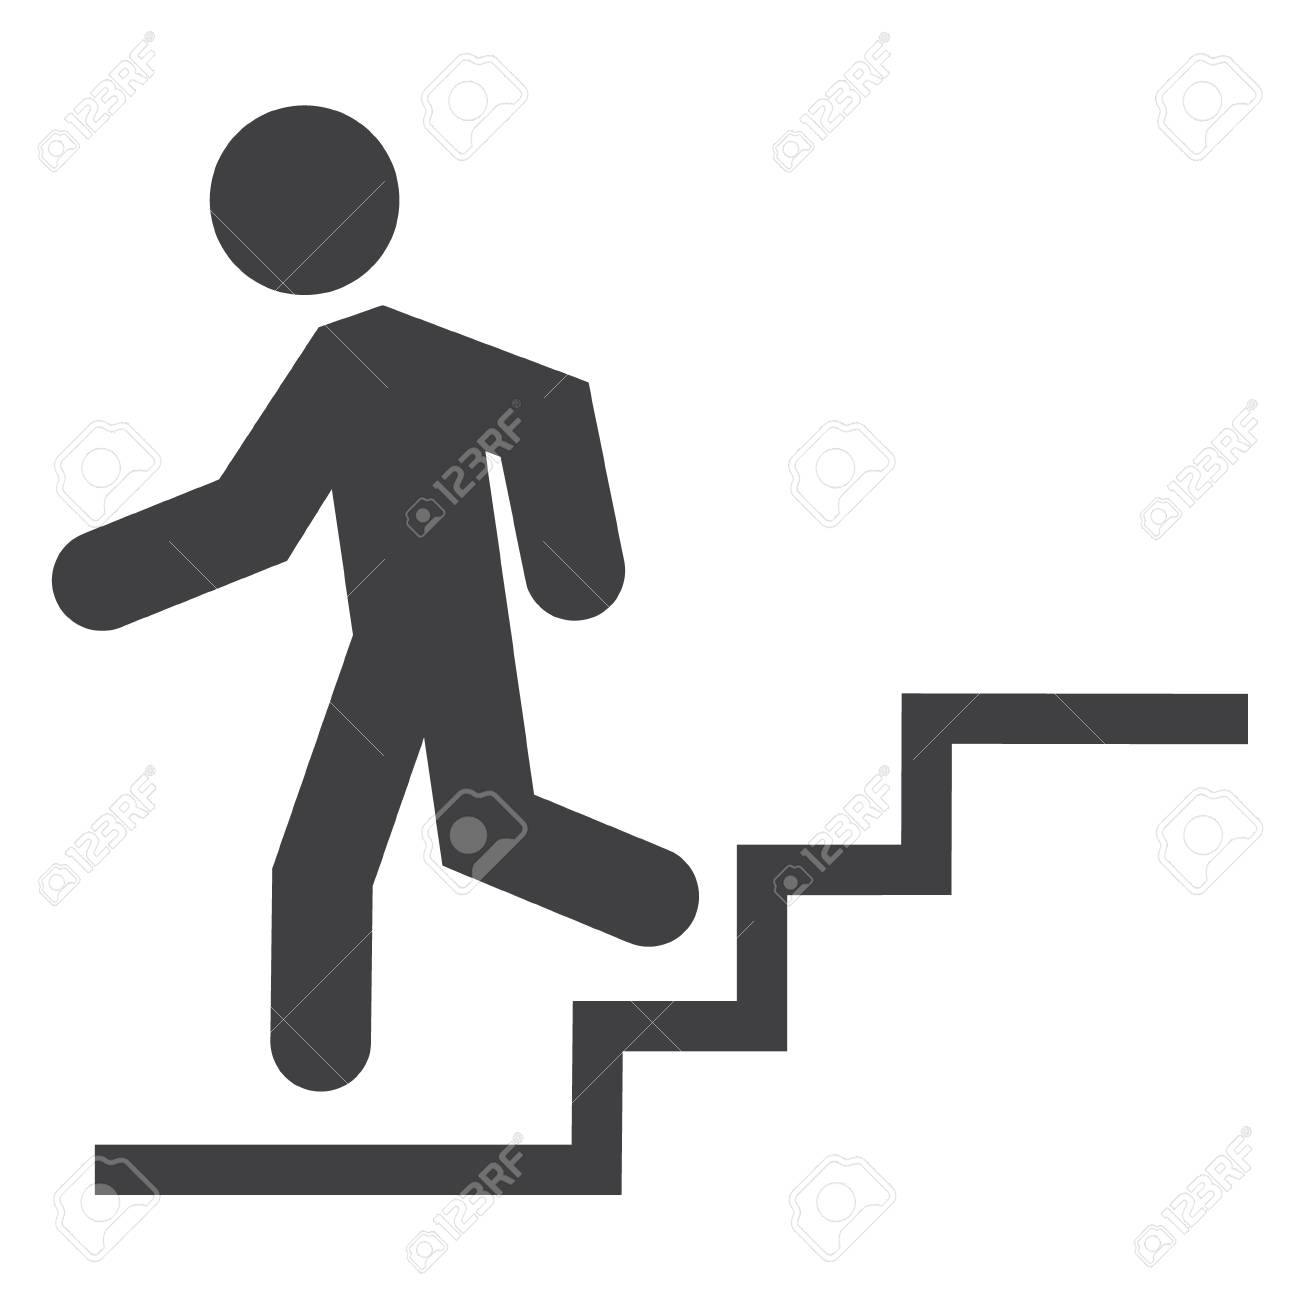 Silhouette Of A Man Walking Down Stairs On #501863.